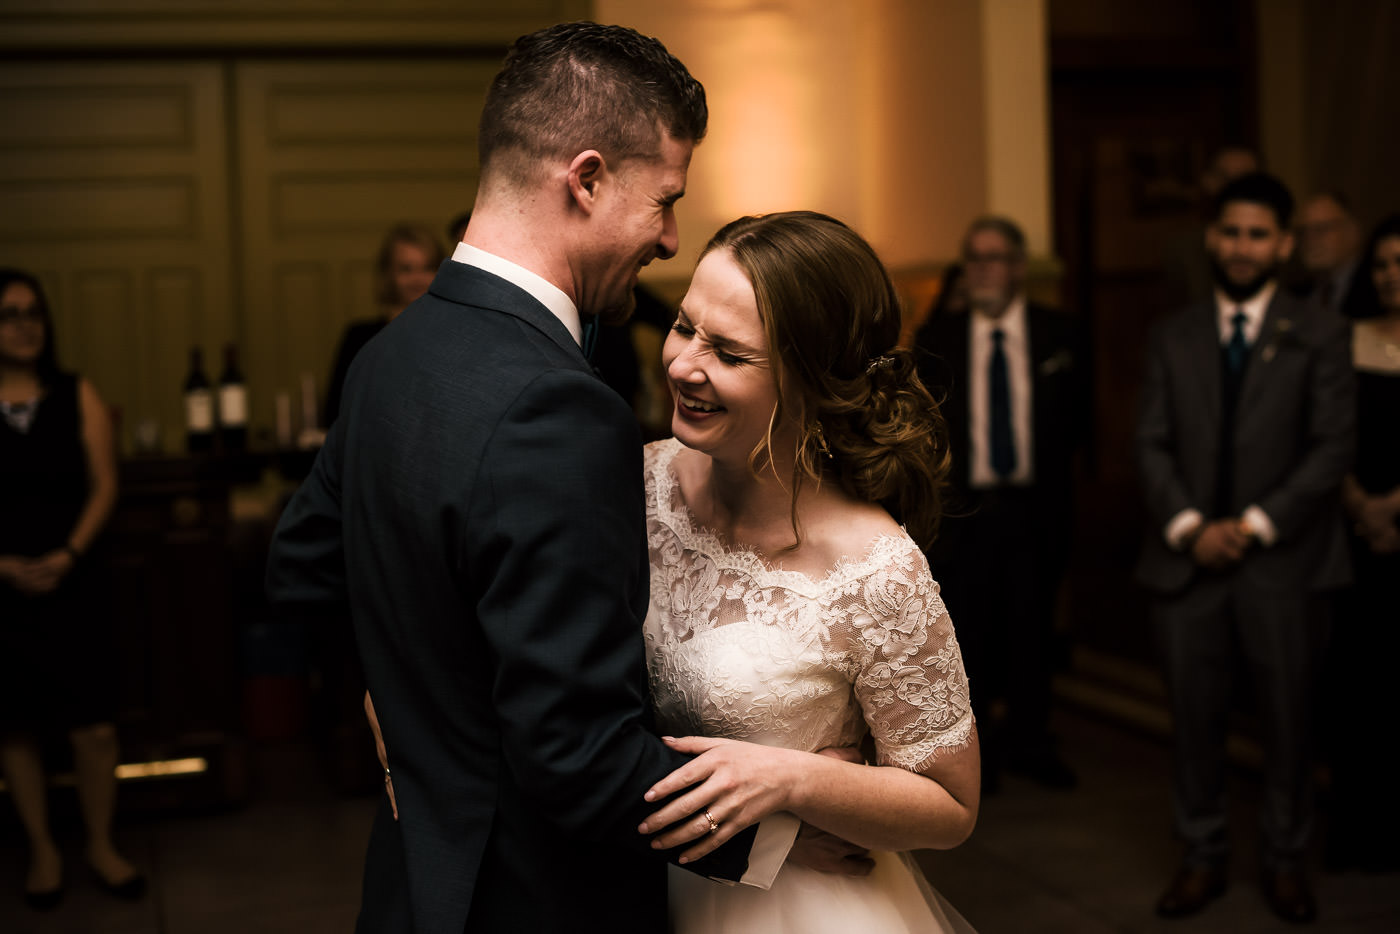 Bride and groom laugh as they dance for the first time as husband and wife.